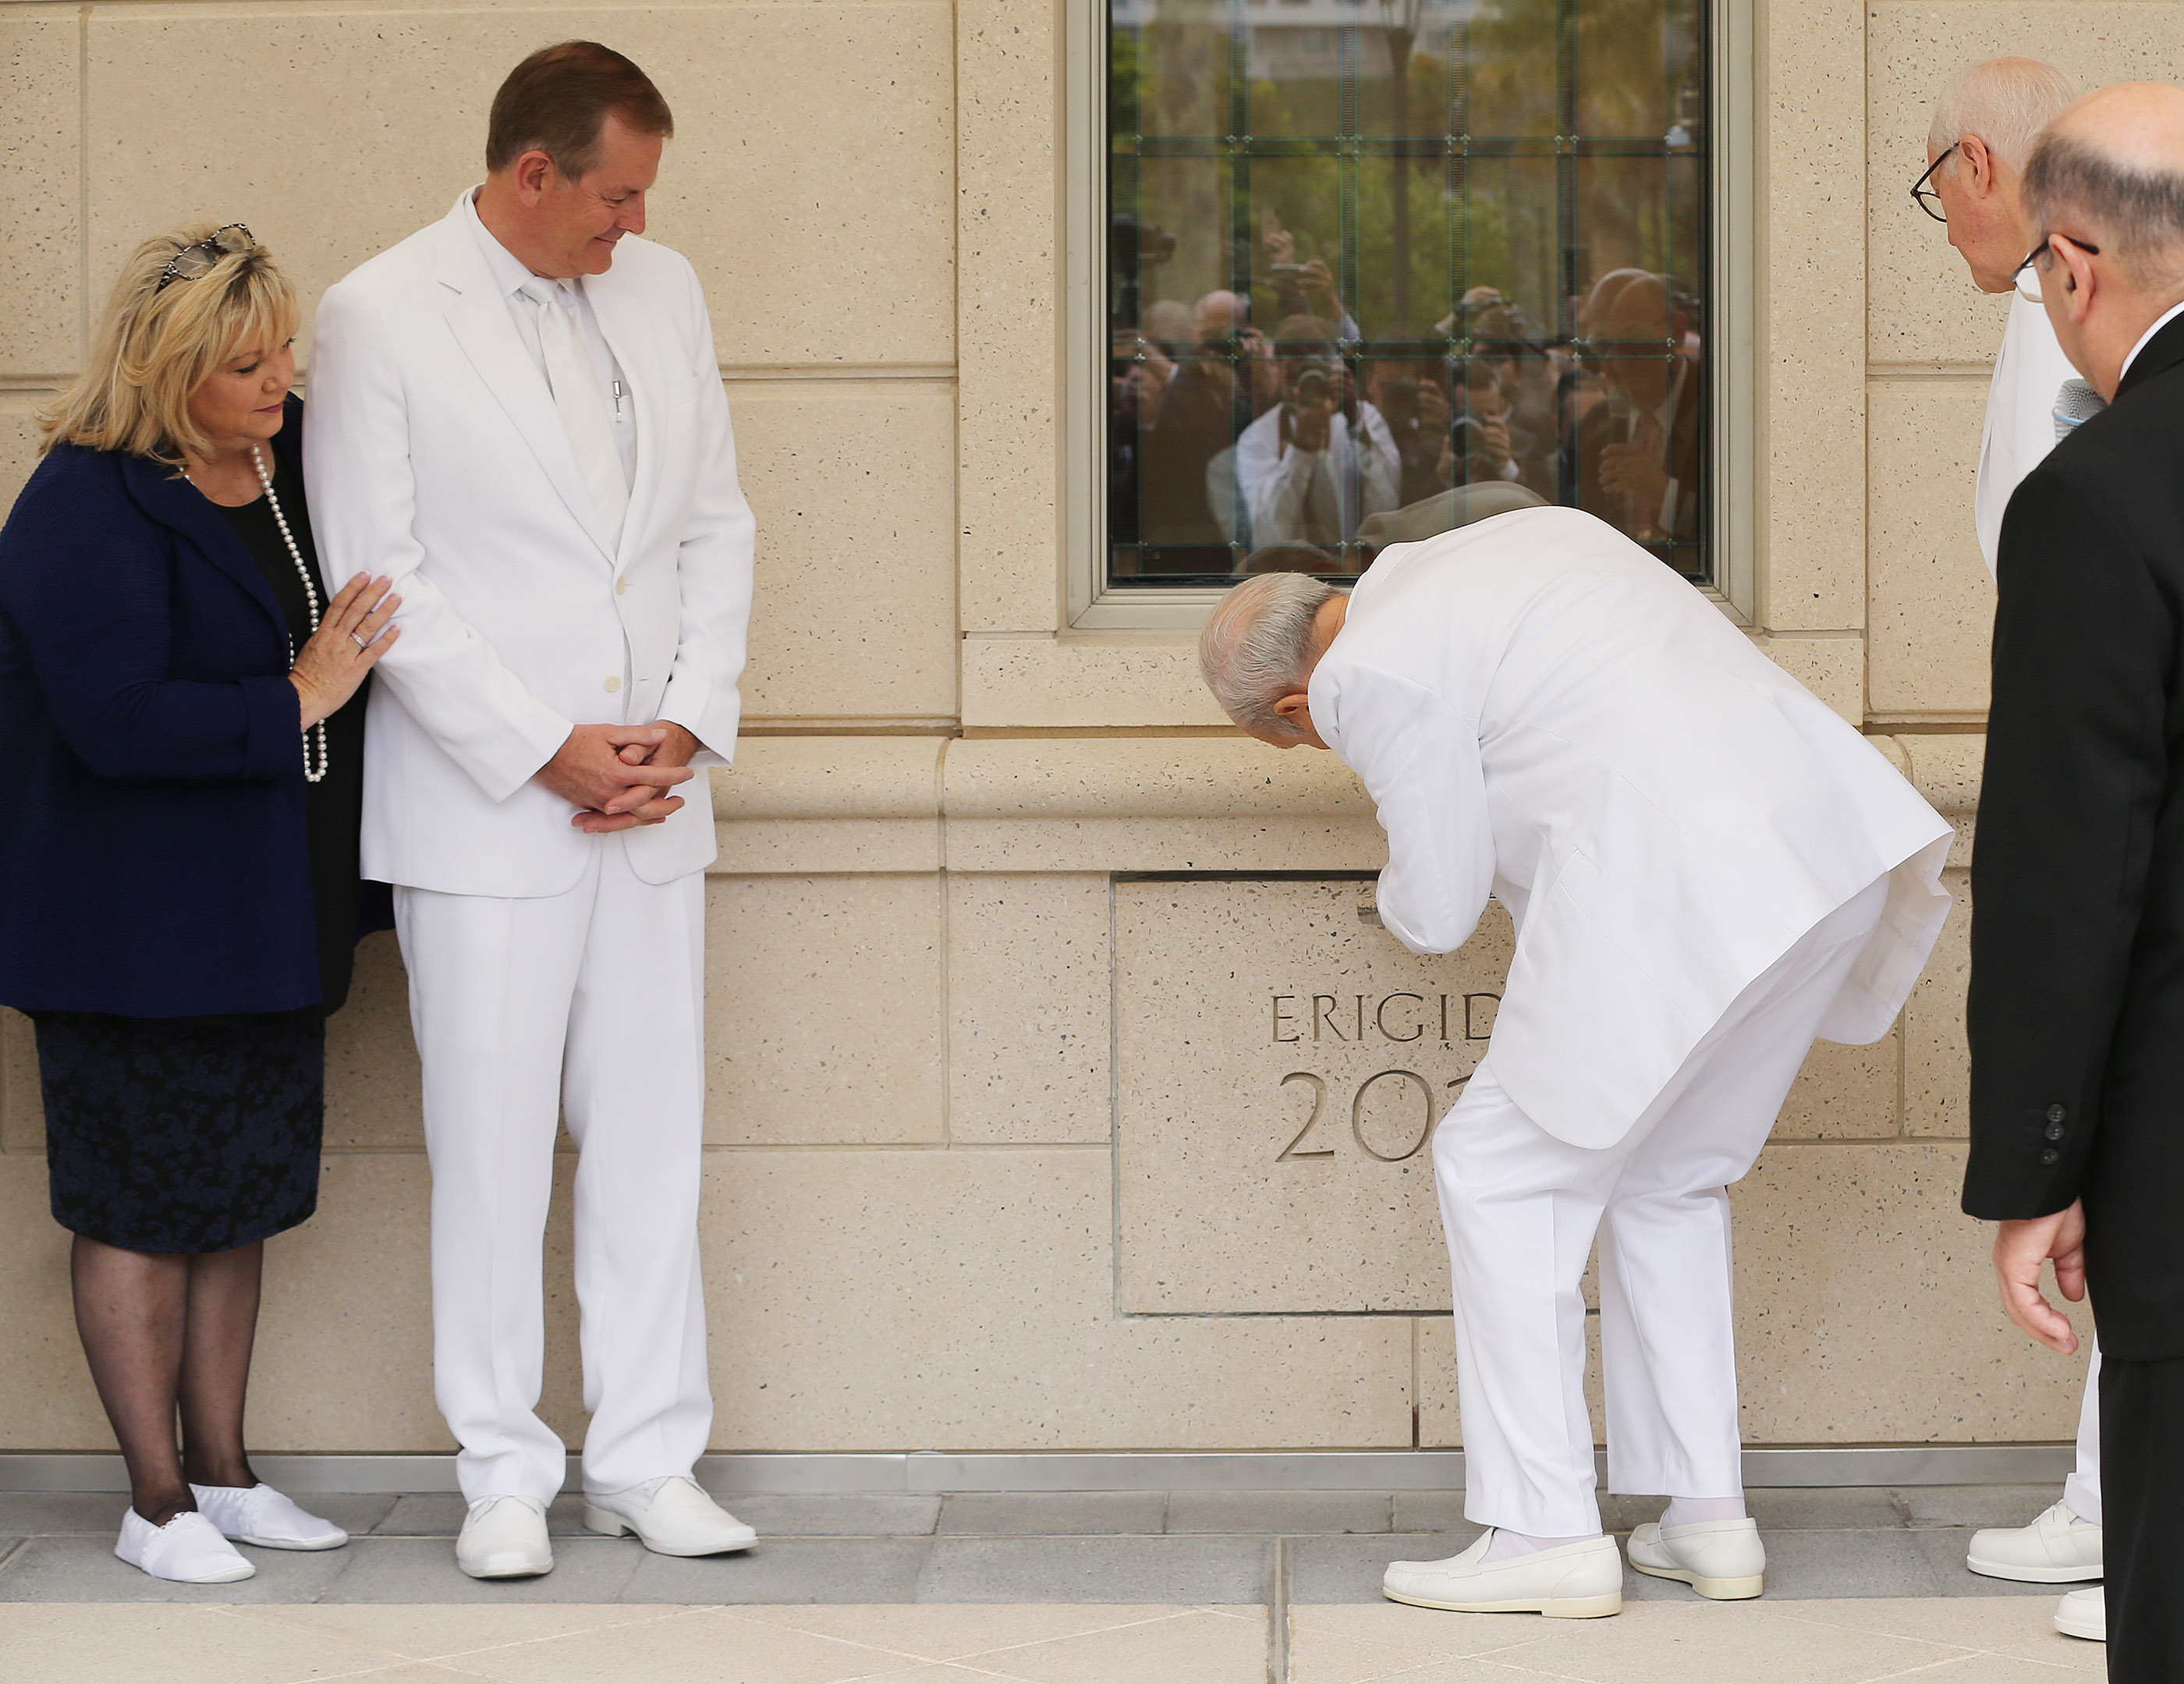 Elder Gary E. Stevenson of the Quorum of the Twelve Apostles and his wife, Sister Lesa Stevenson, watch as President Russell M. Nelson places mortar in the corner stone during the dedication of the Concepcion Chile Temple in Concepcion, Chile, on Sunday, Oct. 28, 2018.